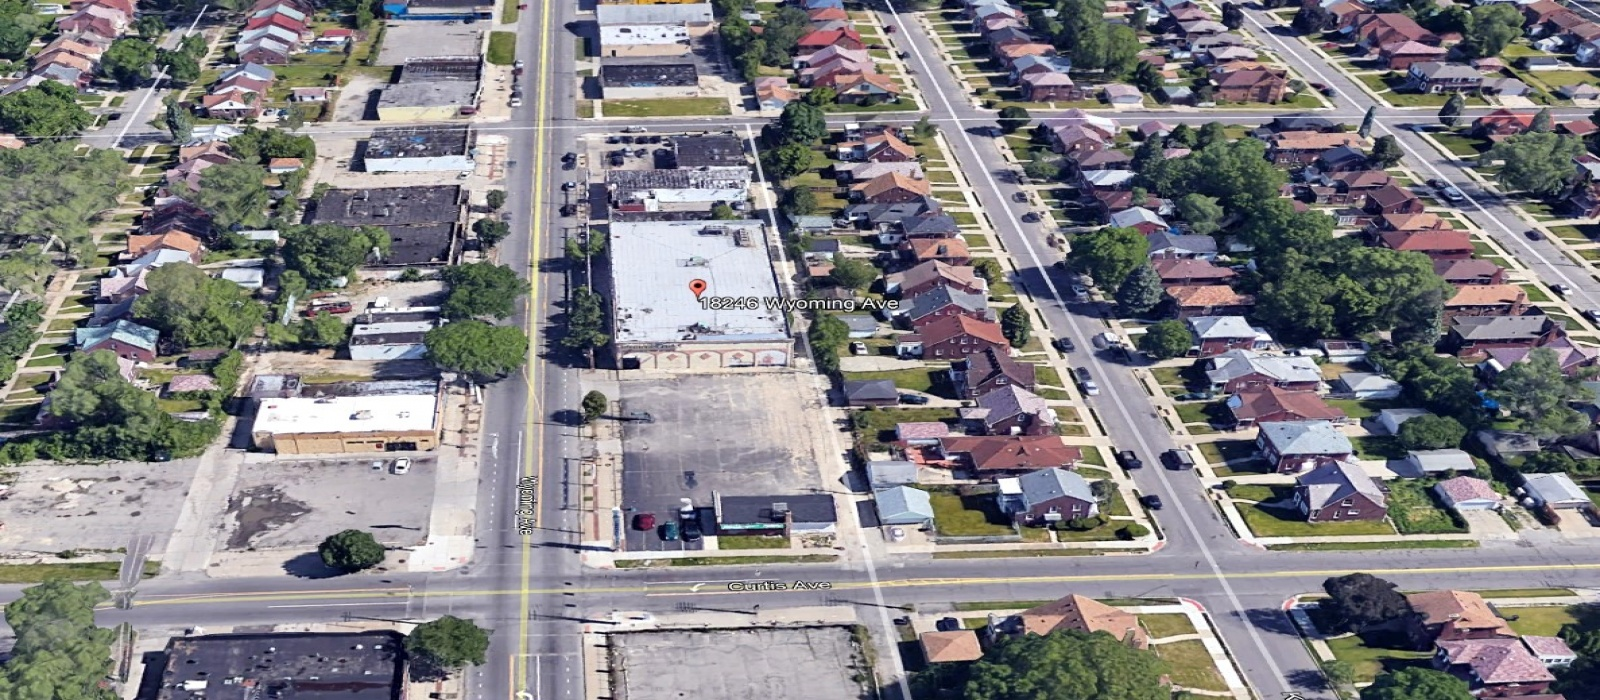 18246 Wyoming Ave, Detroit, Michigan 48221, ,Retail,For Lease,18246 Wyoming Ave,1019